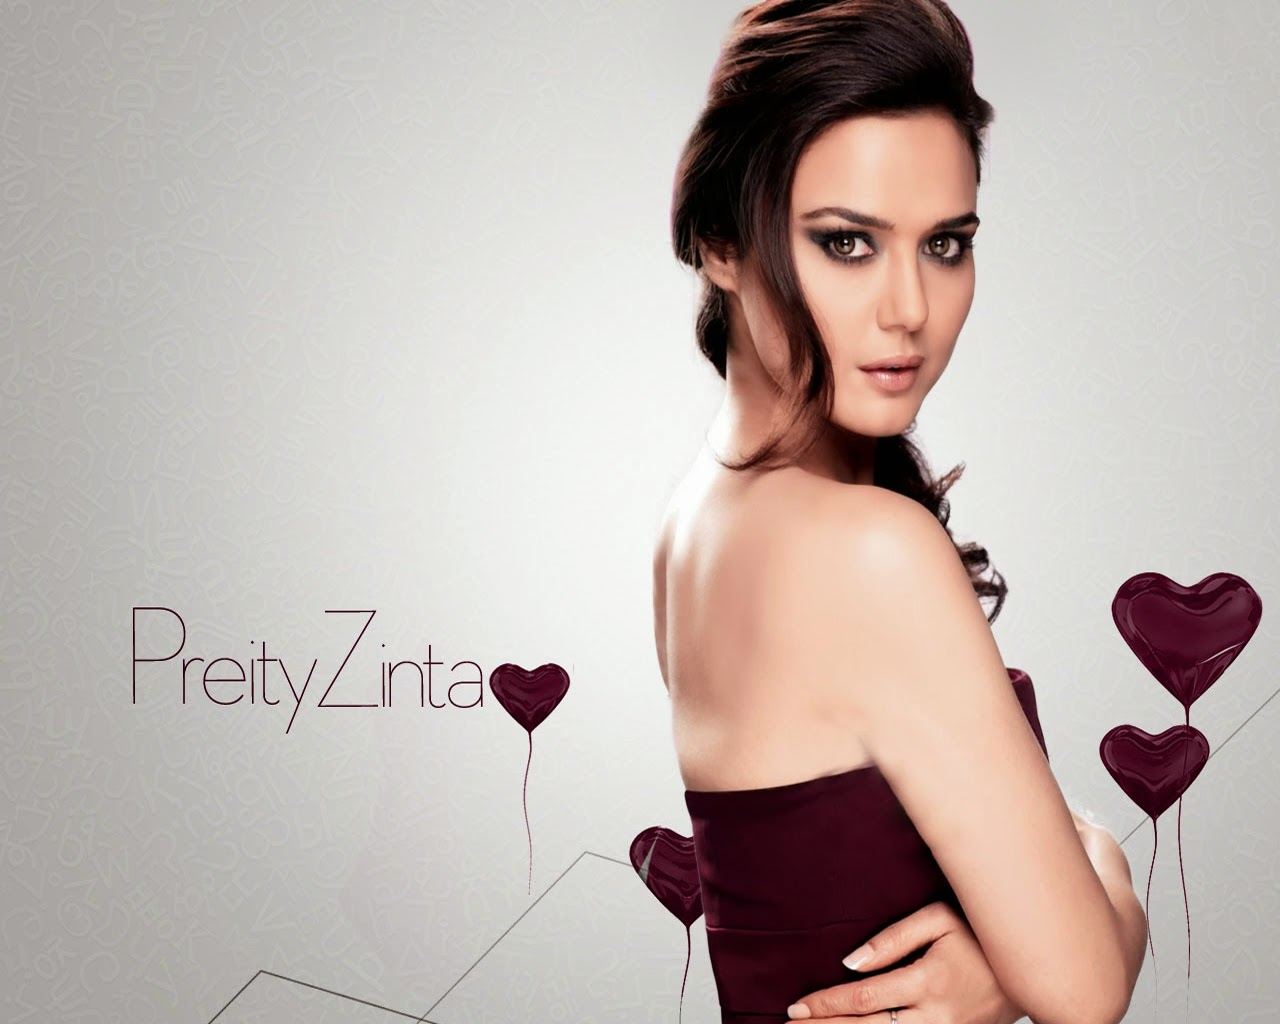 Preity Zinta Full Hd Wallpapers: Wellcome To Bollywood HD Wallpapers: Preity Zinta